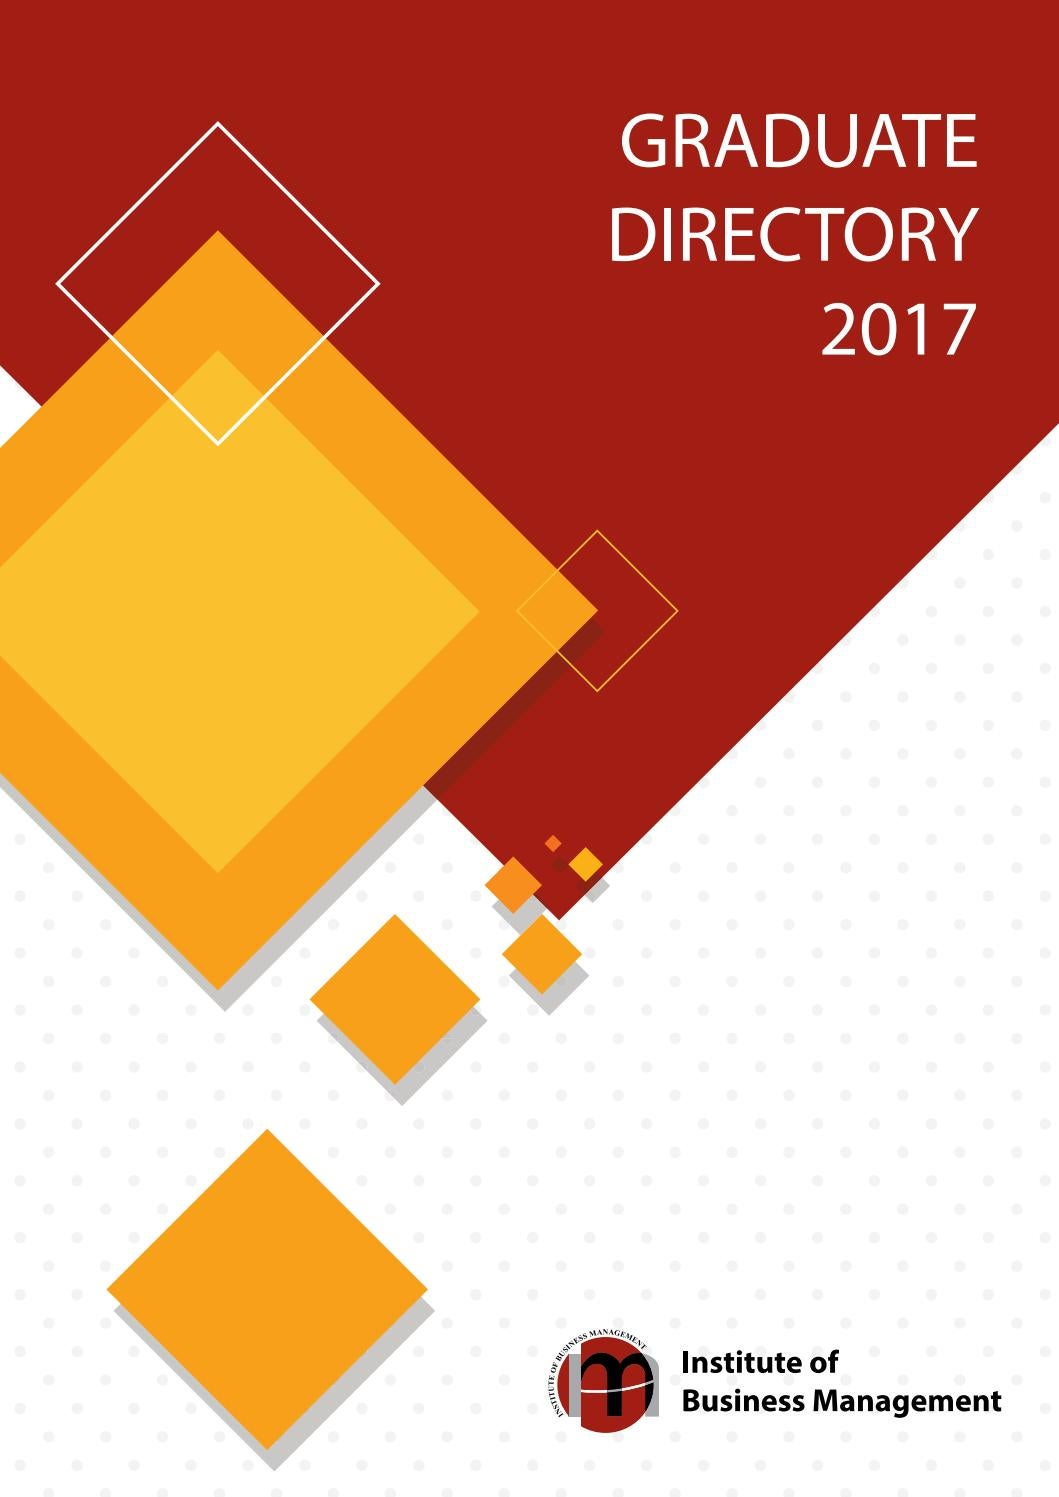 graduate directory 2017 by iobm